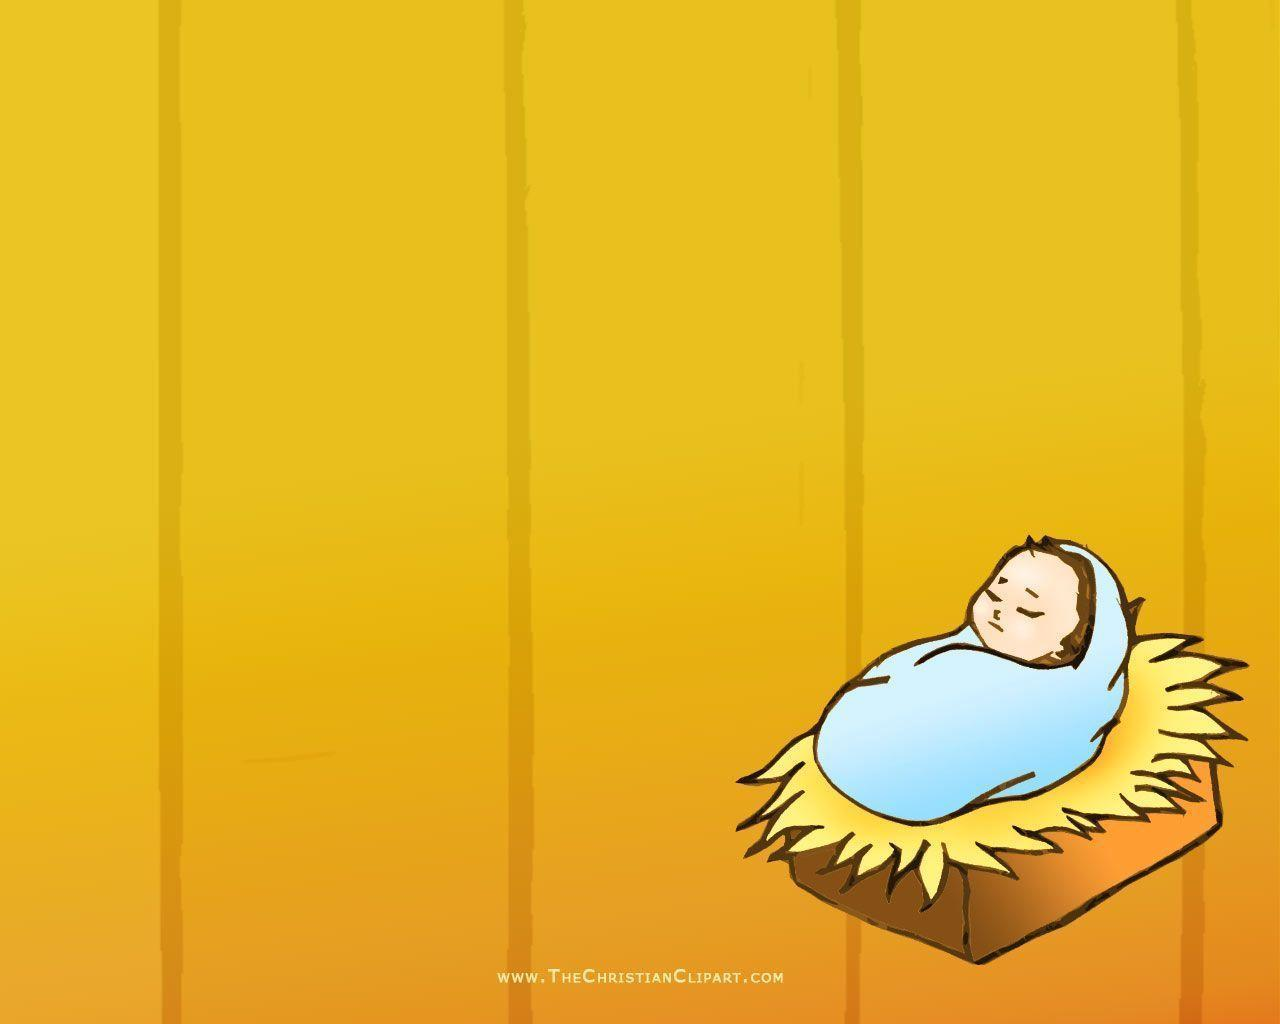 Baby Jesus Image For Christmas 152517 High Definition Wallpapers